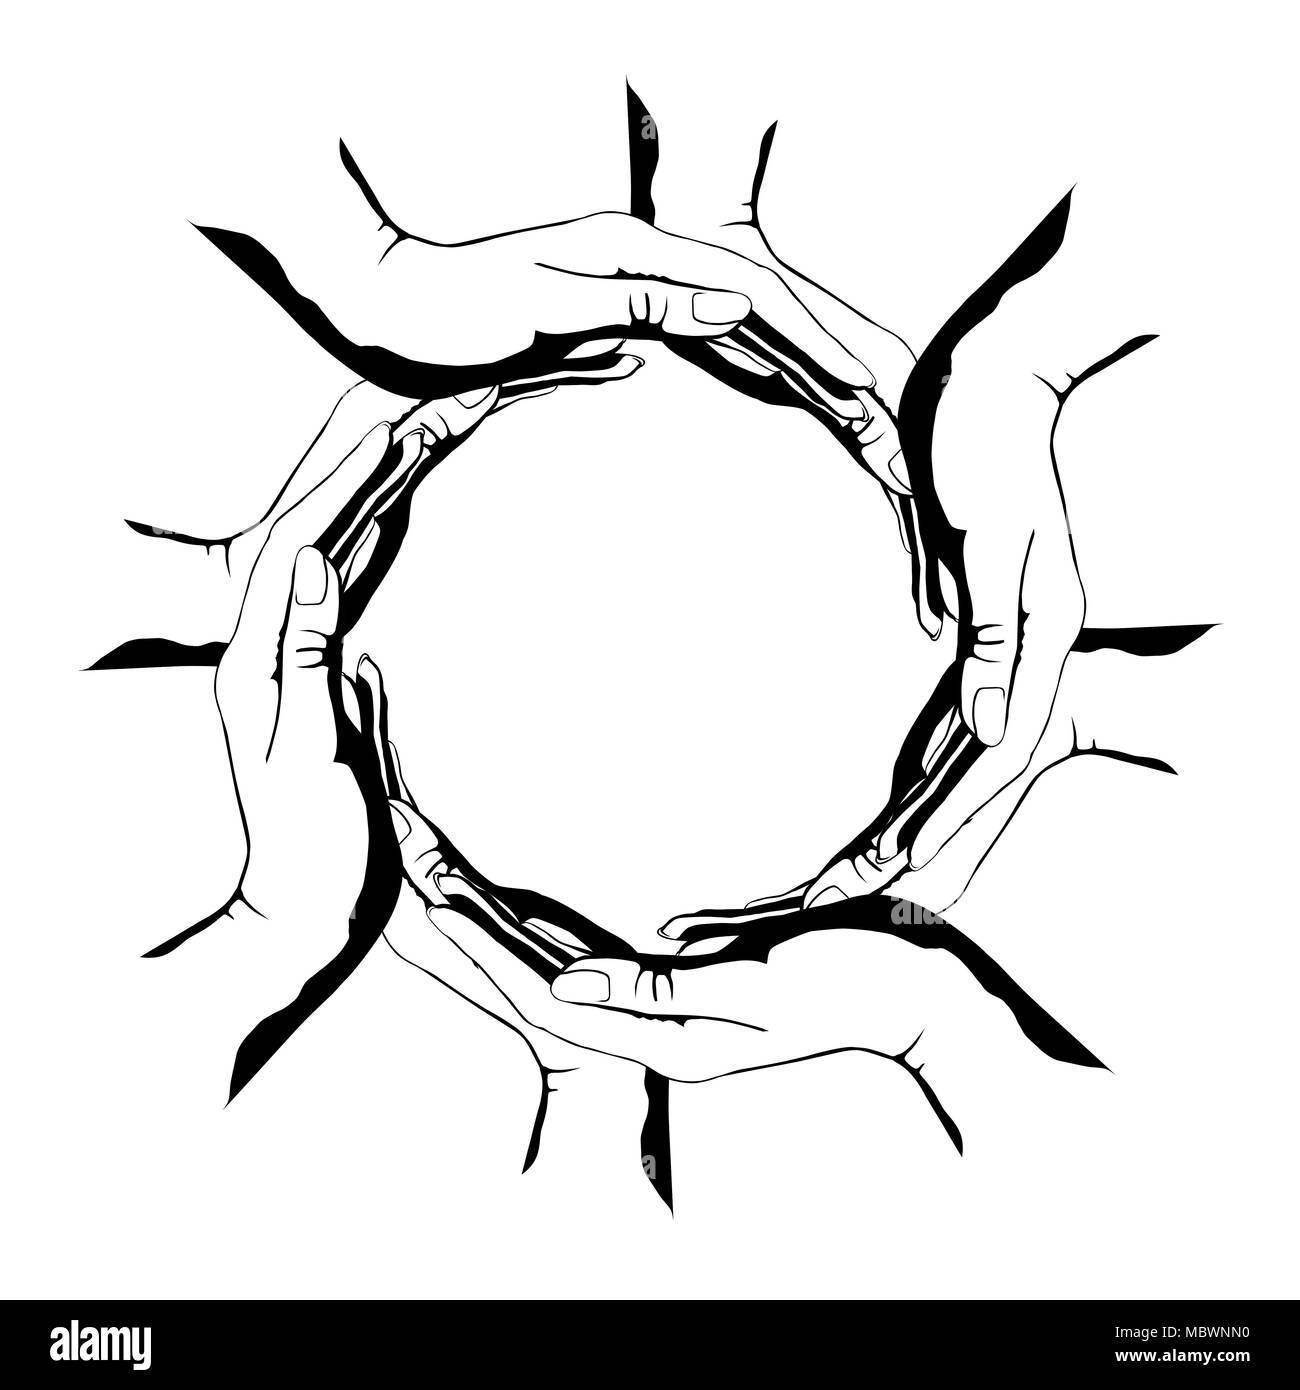 A group of people making a circle shape with their hands conceptual round symbol isolated illustration on white background